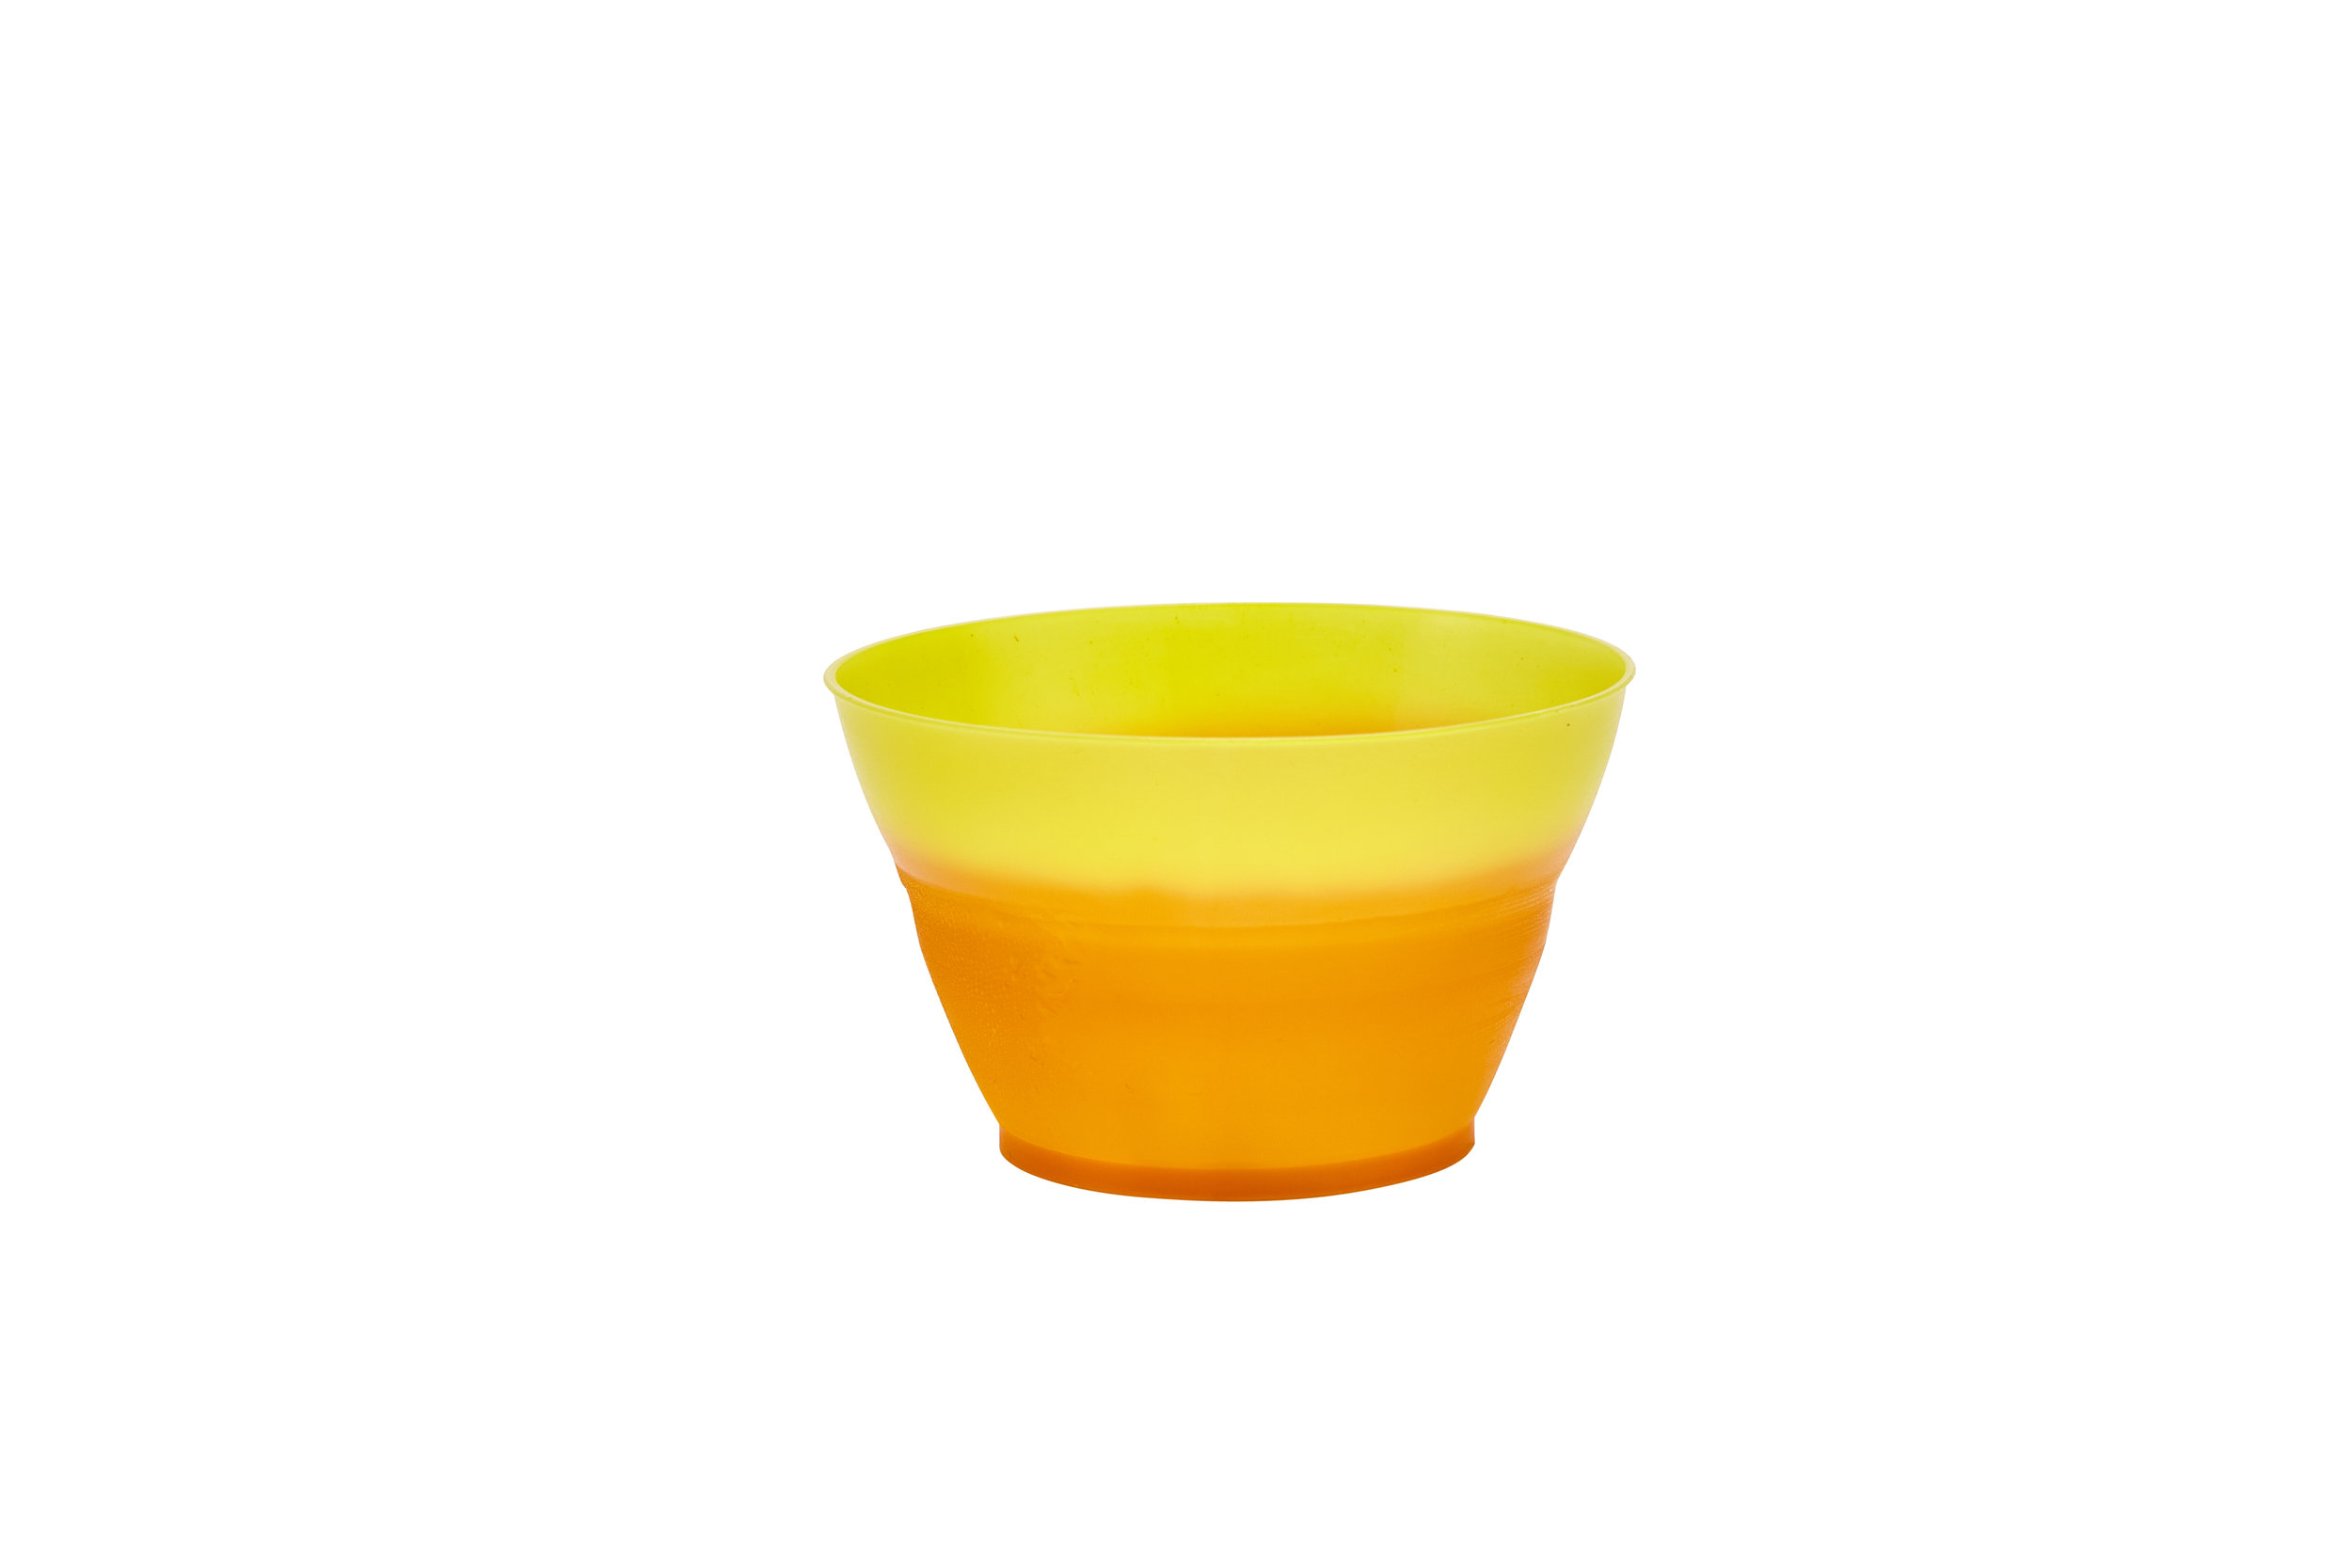 Color Changing Ice Cream Cup Yellow to Orange